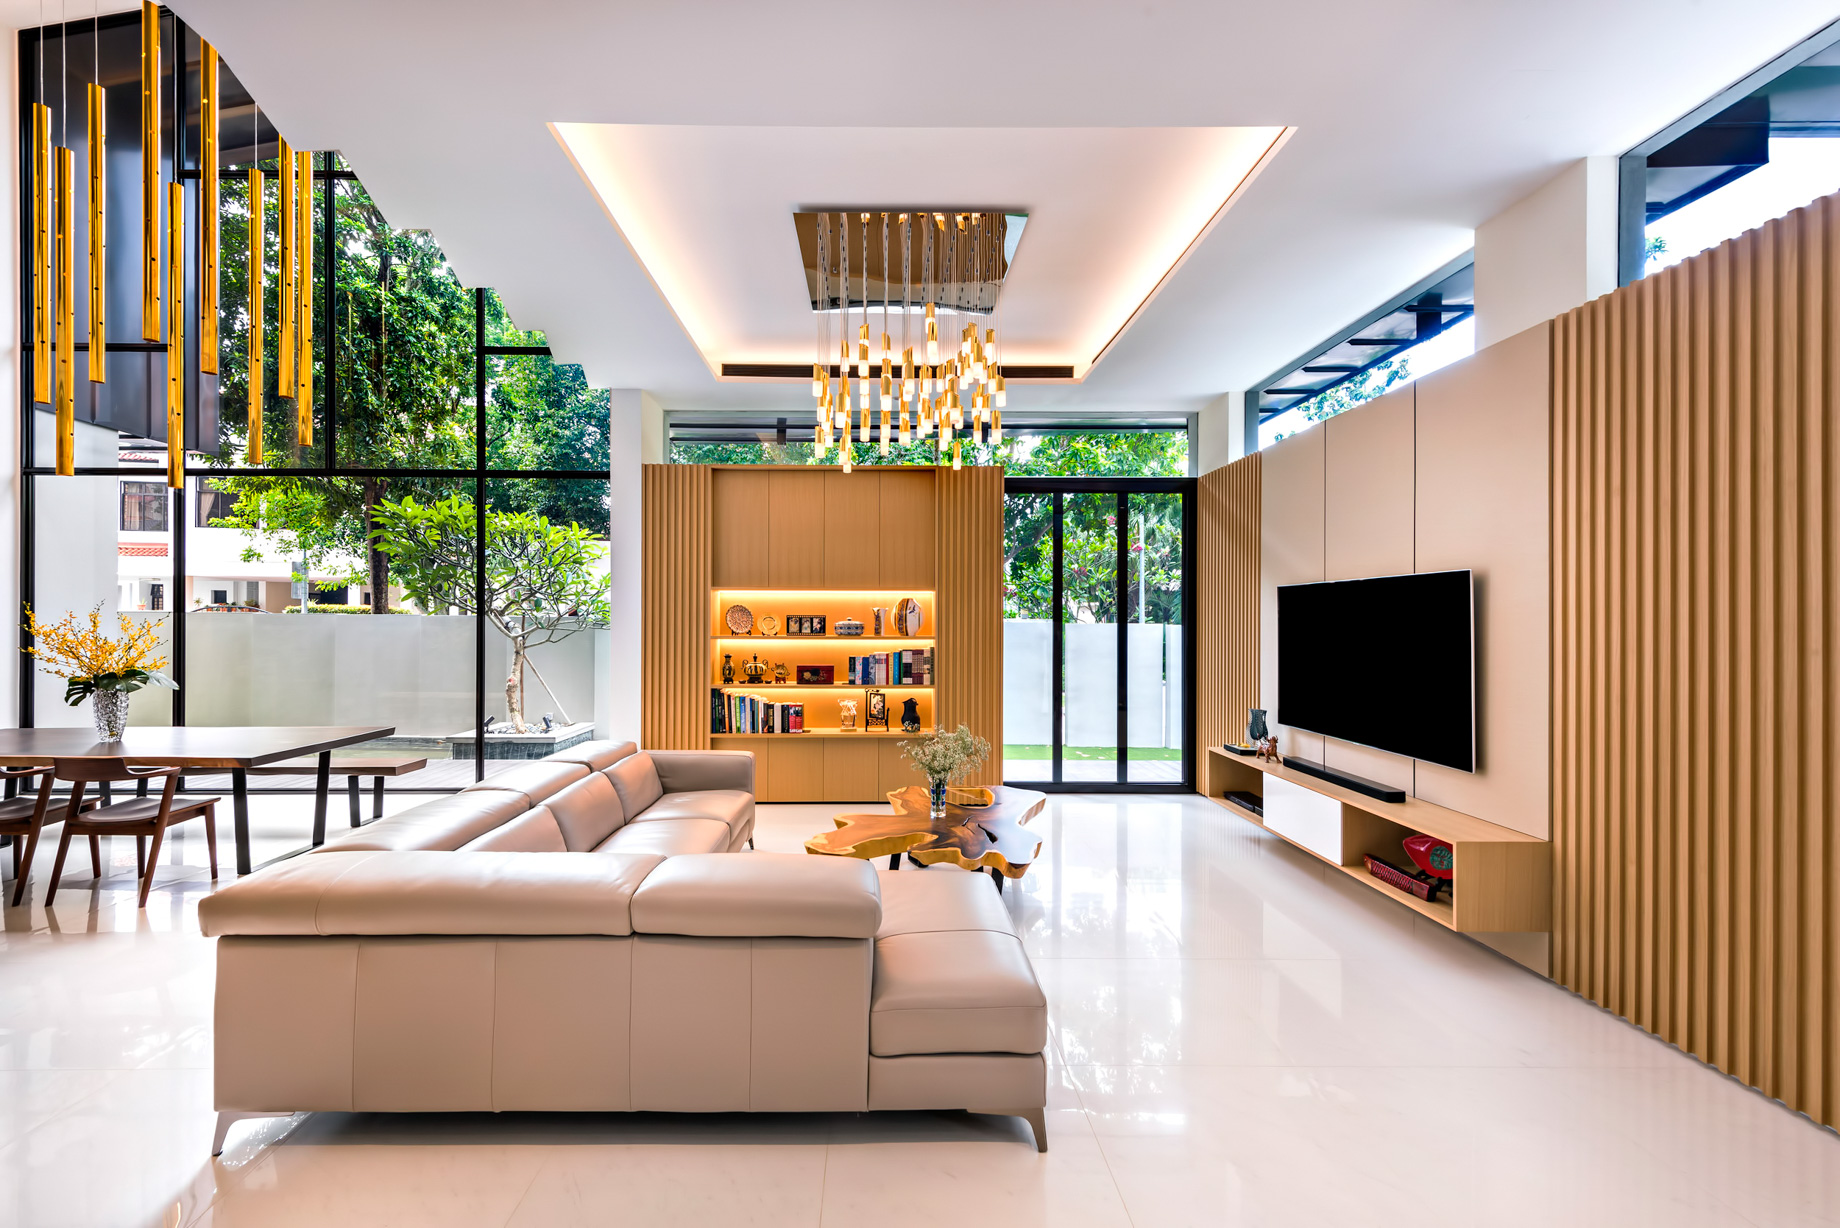 The Loft House Luxury Residence - Namly Place, Singapore